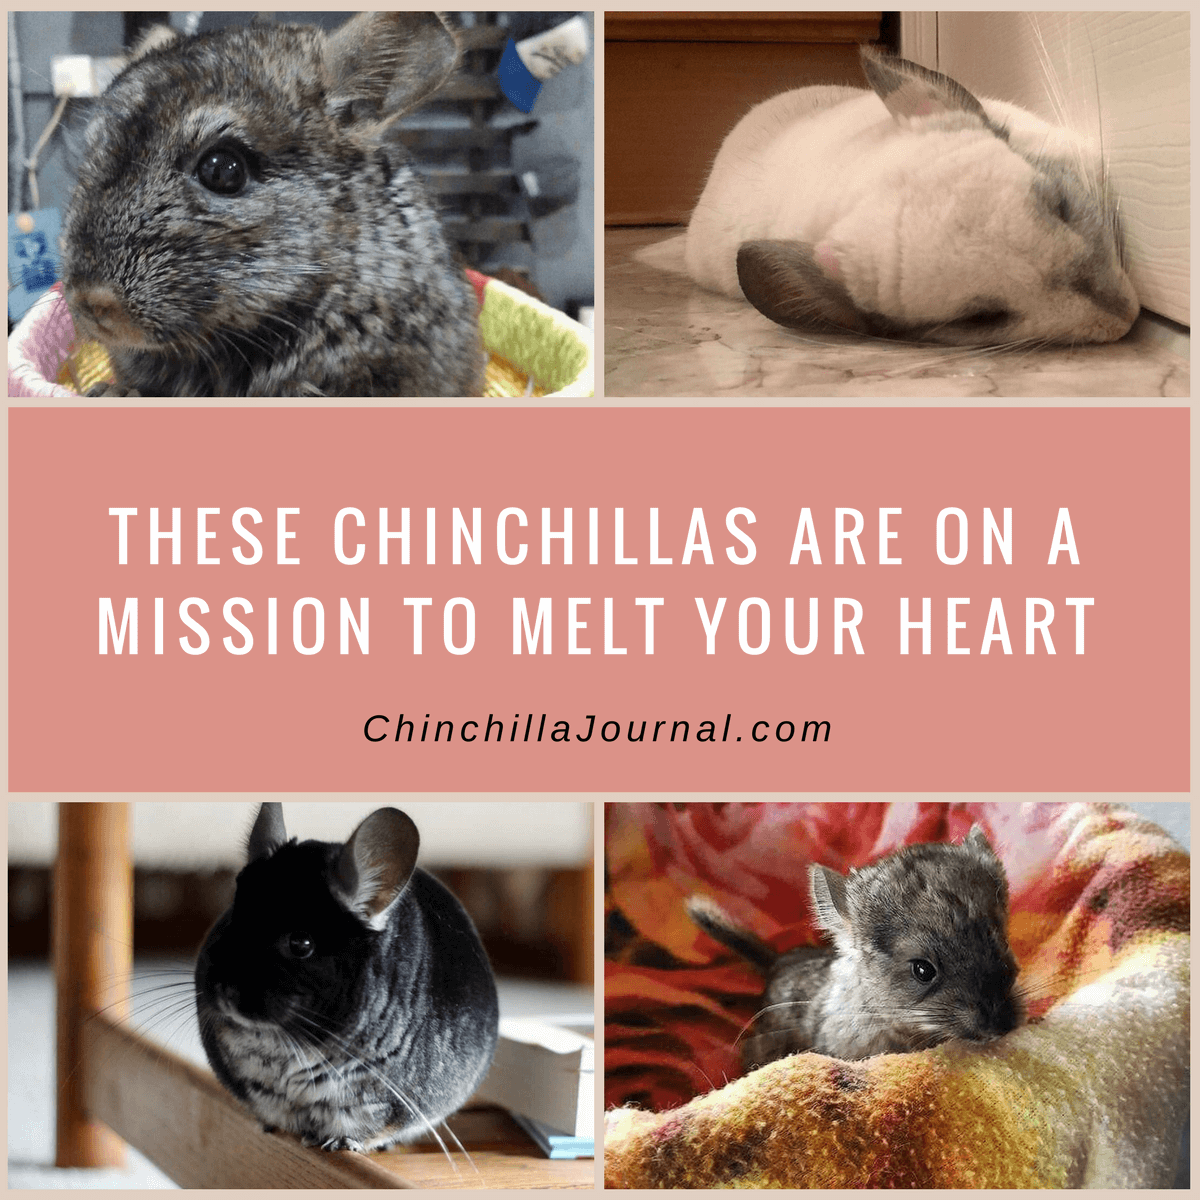 These Chinchillas Are On A Mission To Melt Your Heart